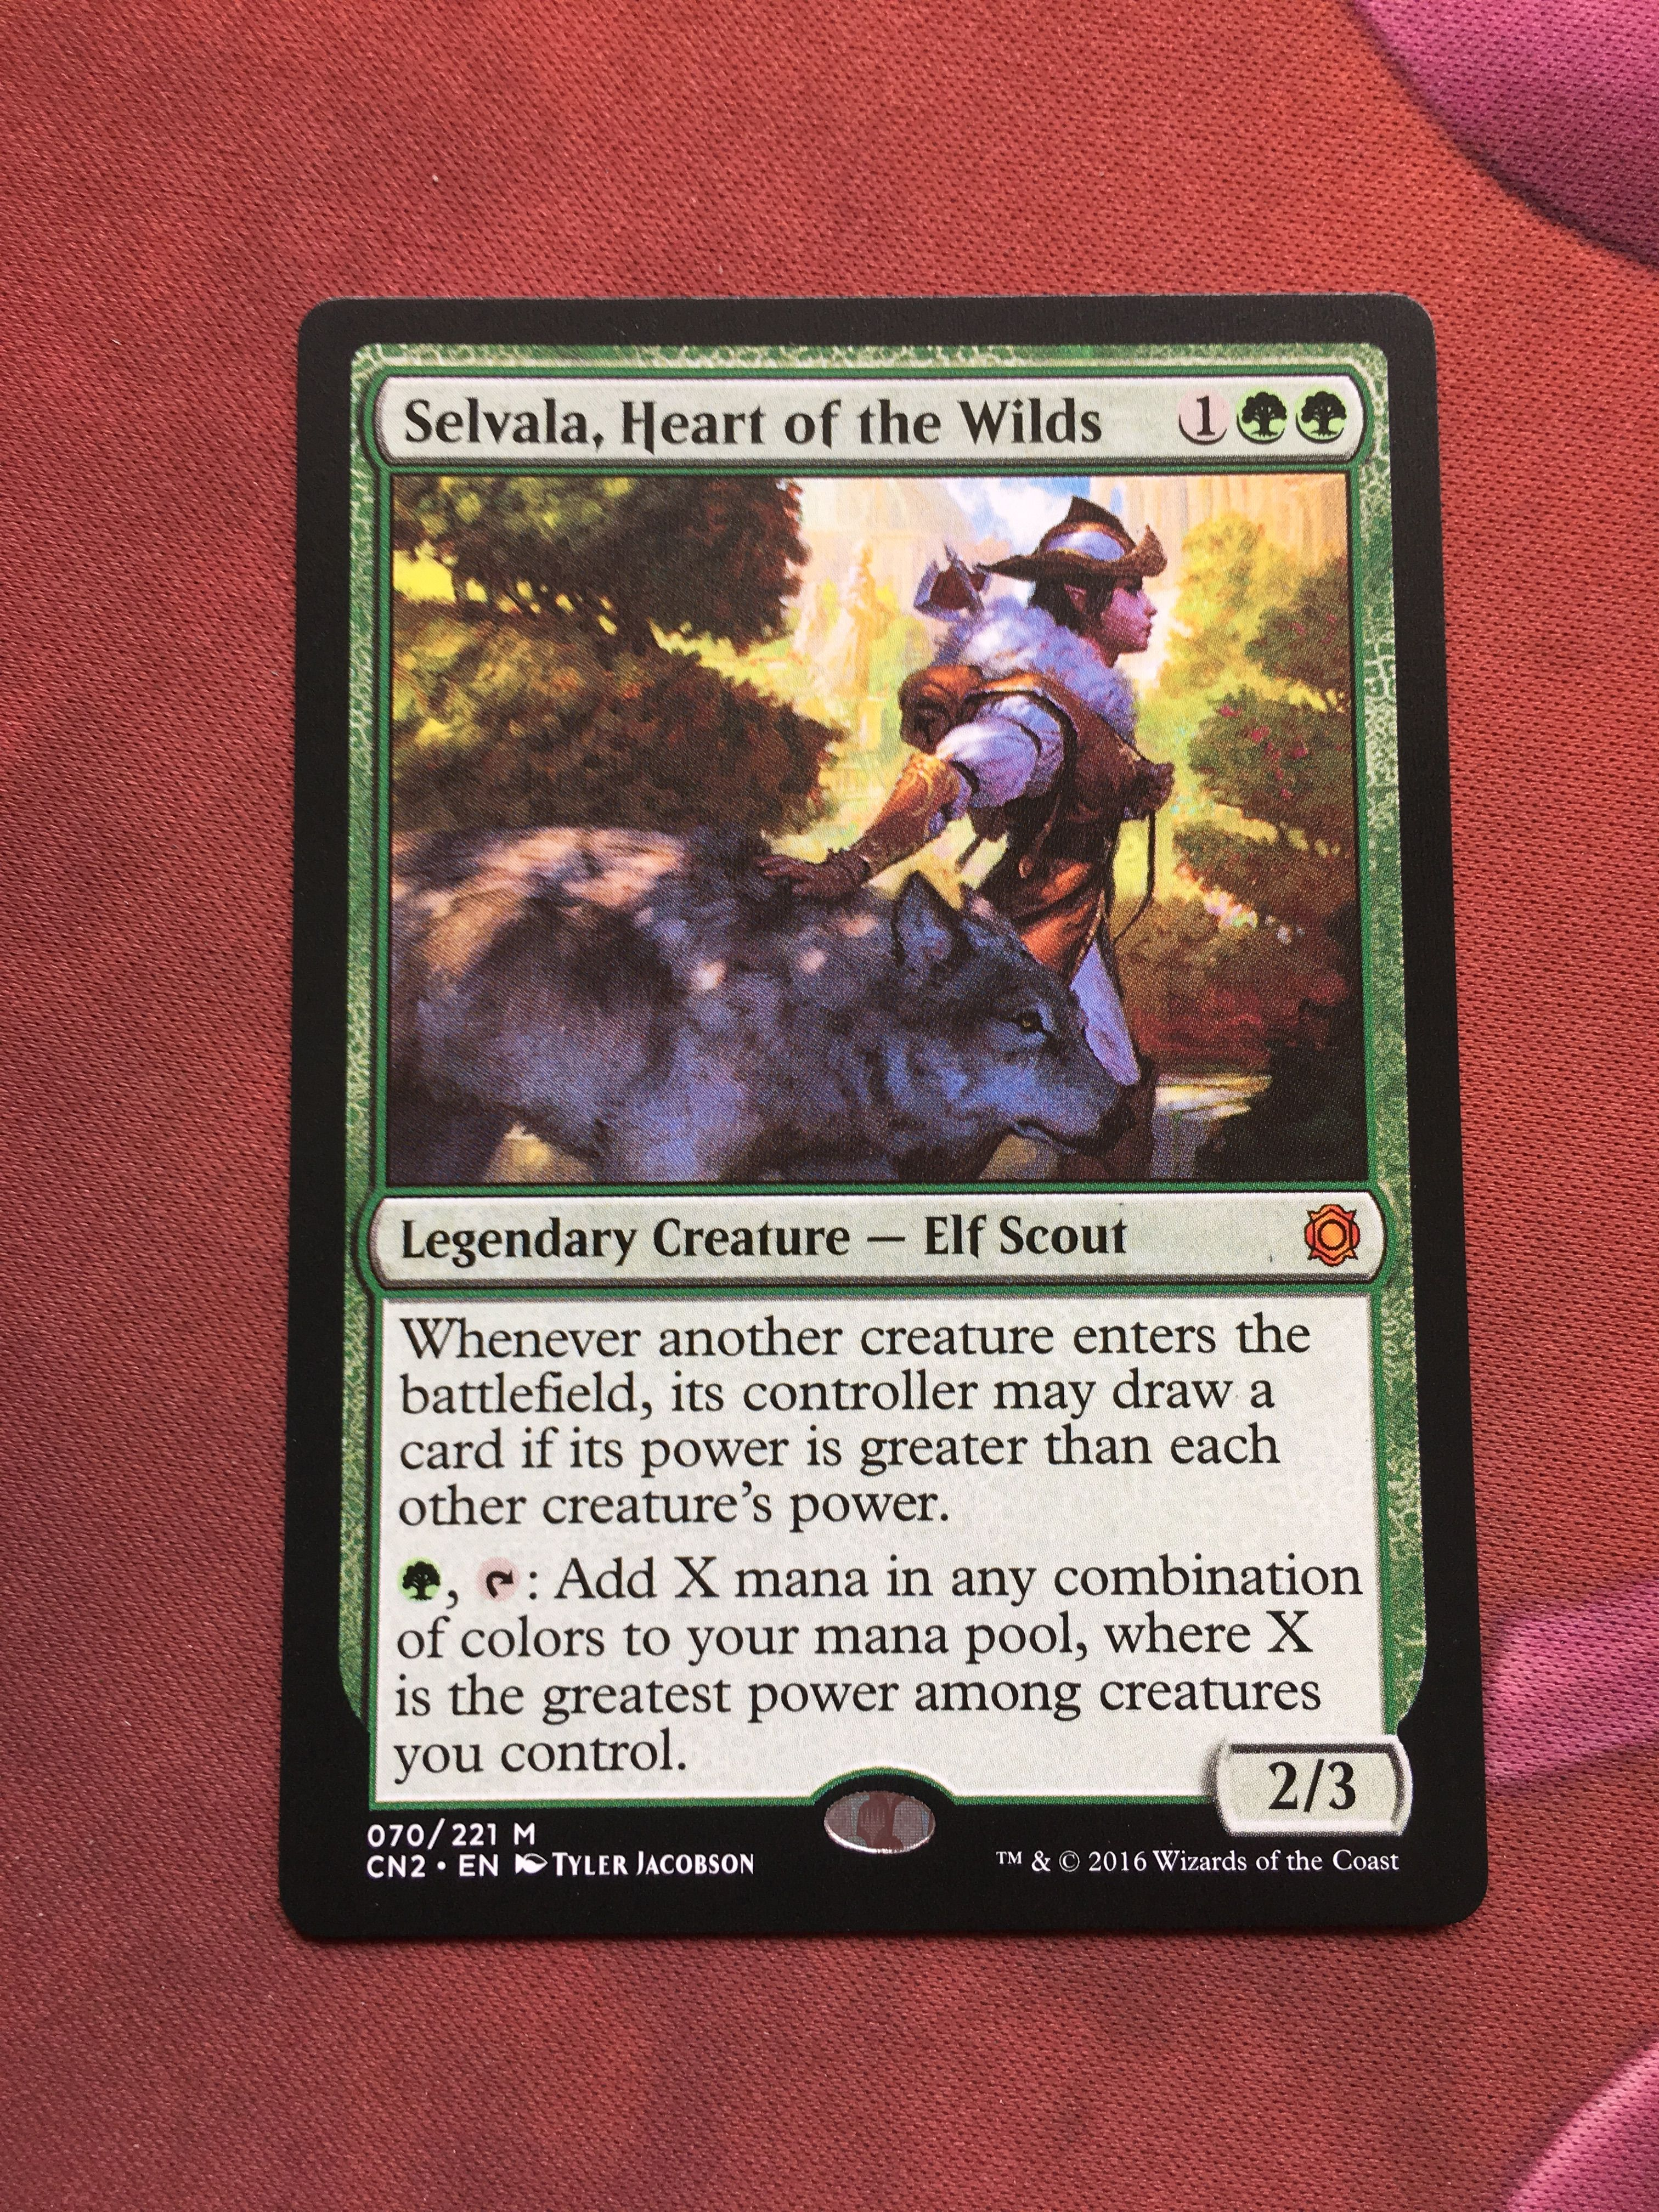 Selvala, Heart of the Wilds Cards, Holo, Legendary creature